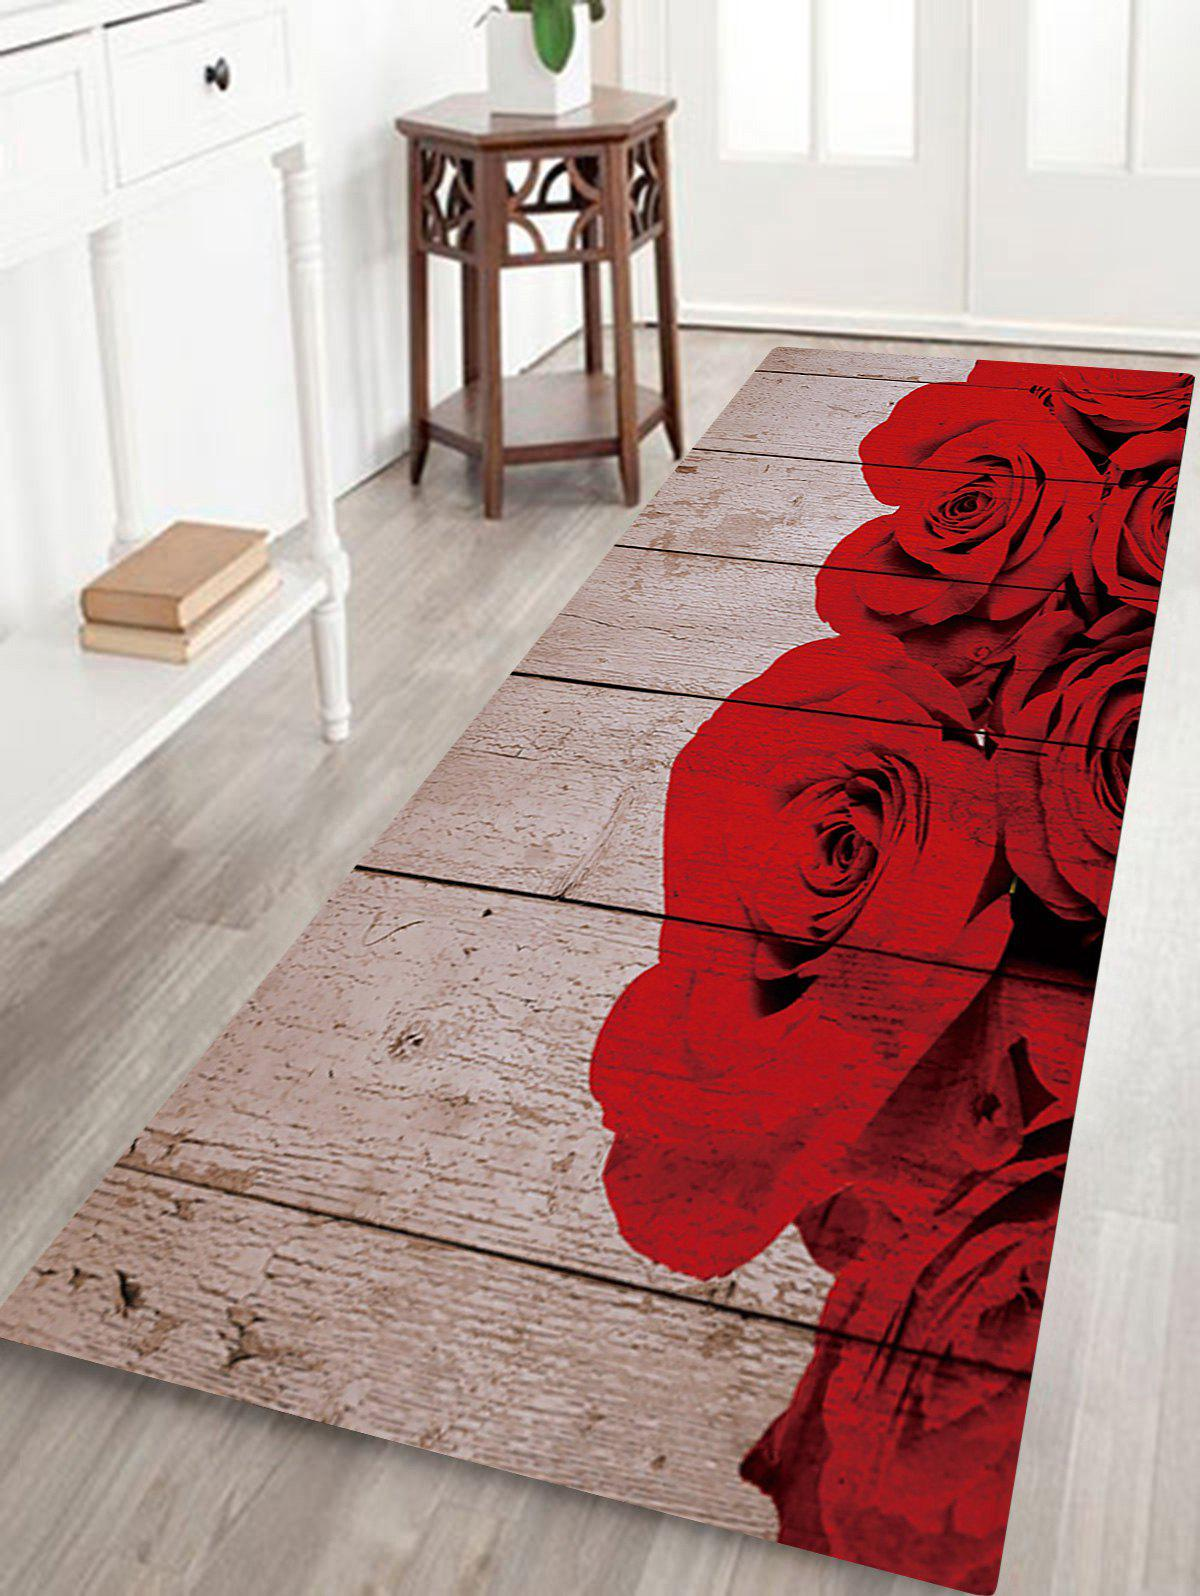 Rose Blossom Plank Printed Indoor Outdoor Area Rug - COLORMIX W24 INCH * L71 INCH